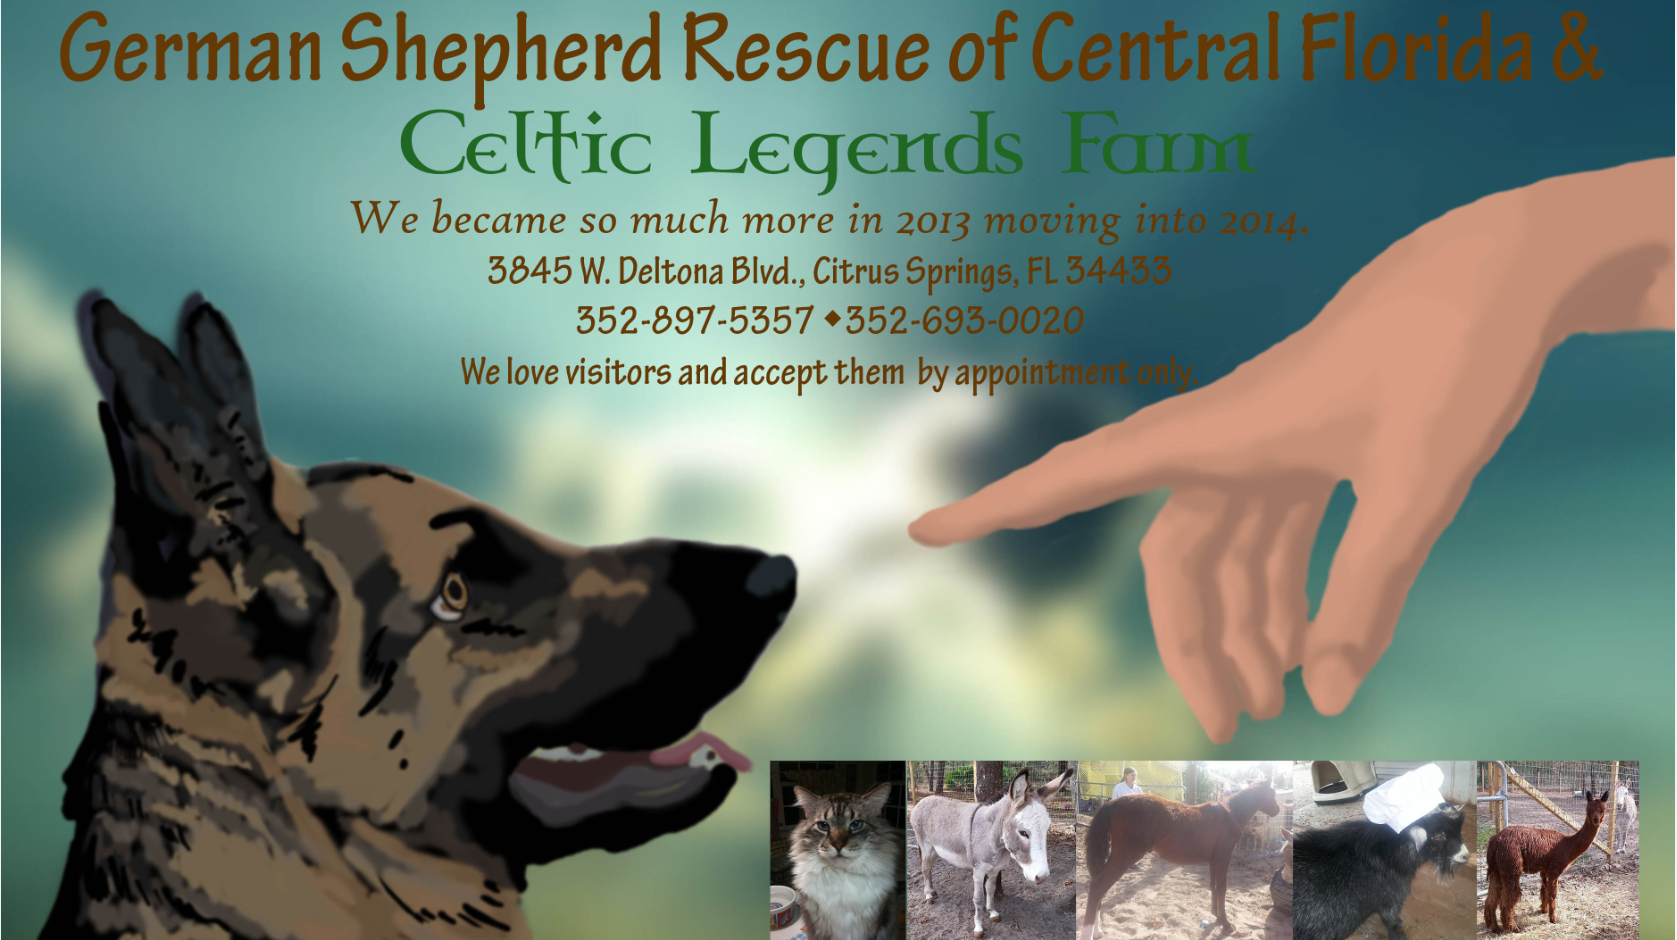 German Shepherd Rescue of Central Florida